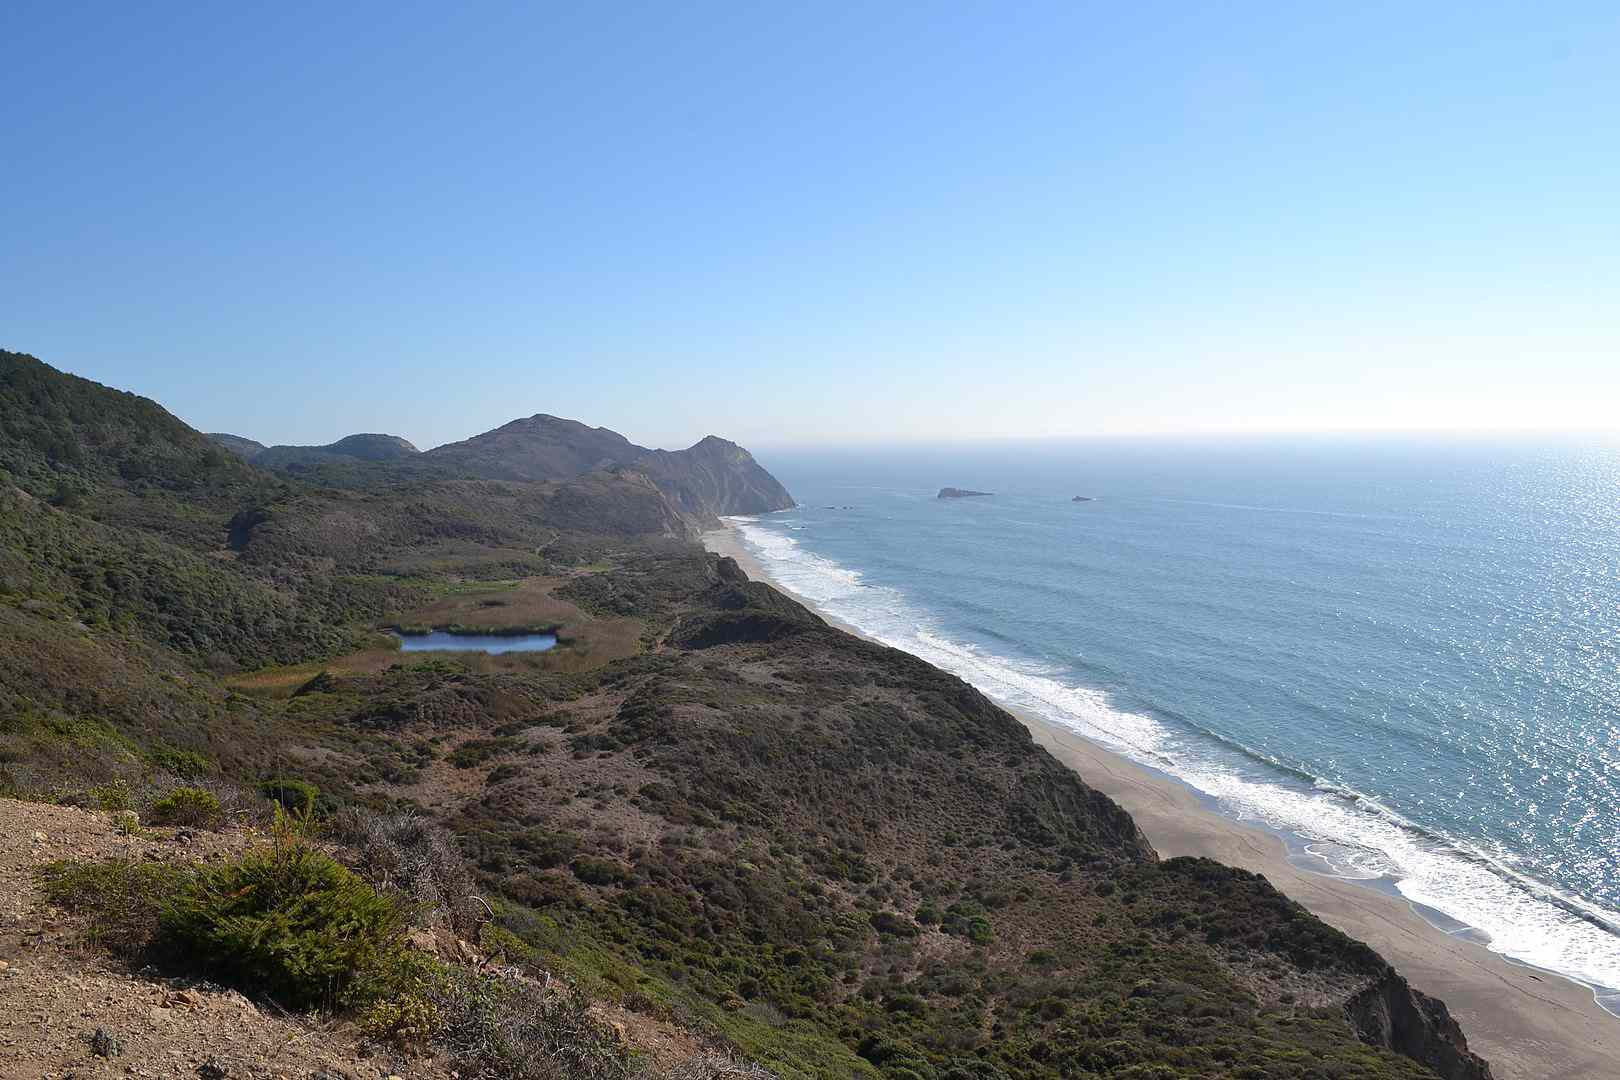 Wildcat Beach on the Point Reyes National Seashore with a clear blue sky, rugged hills, and blue surf